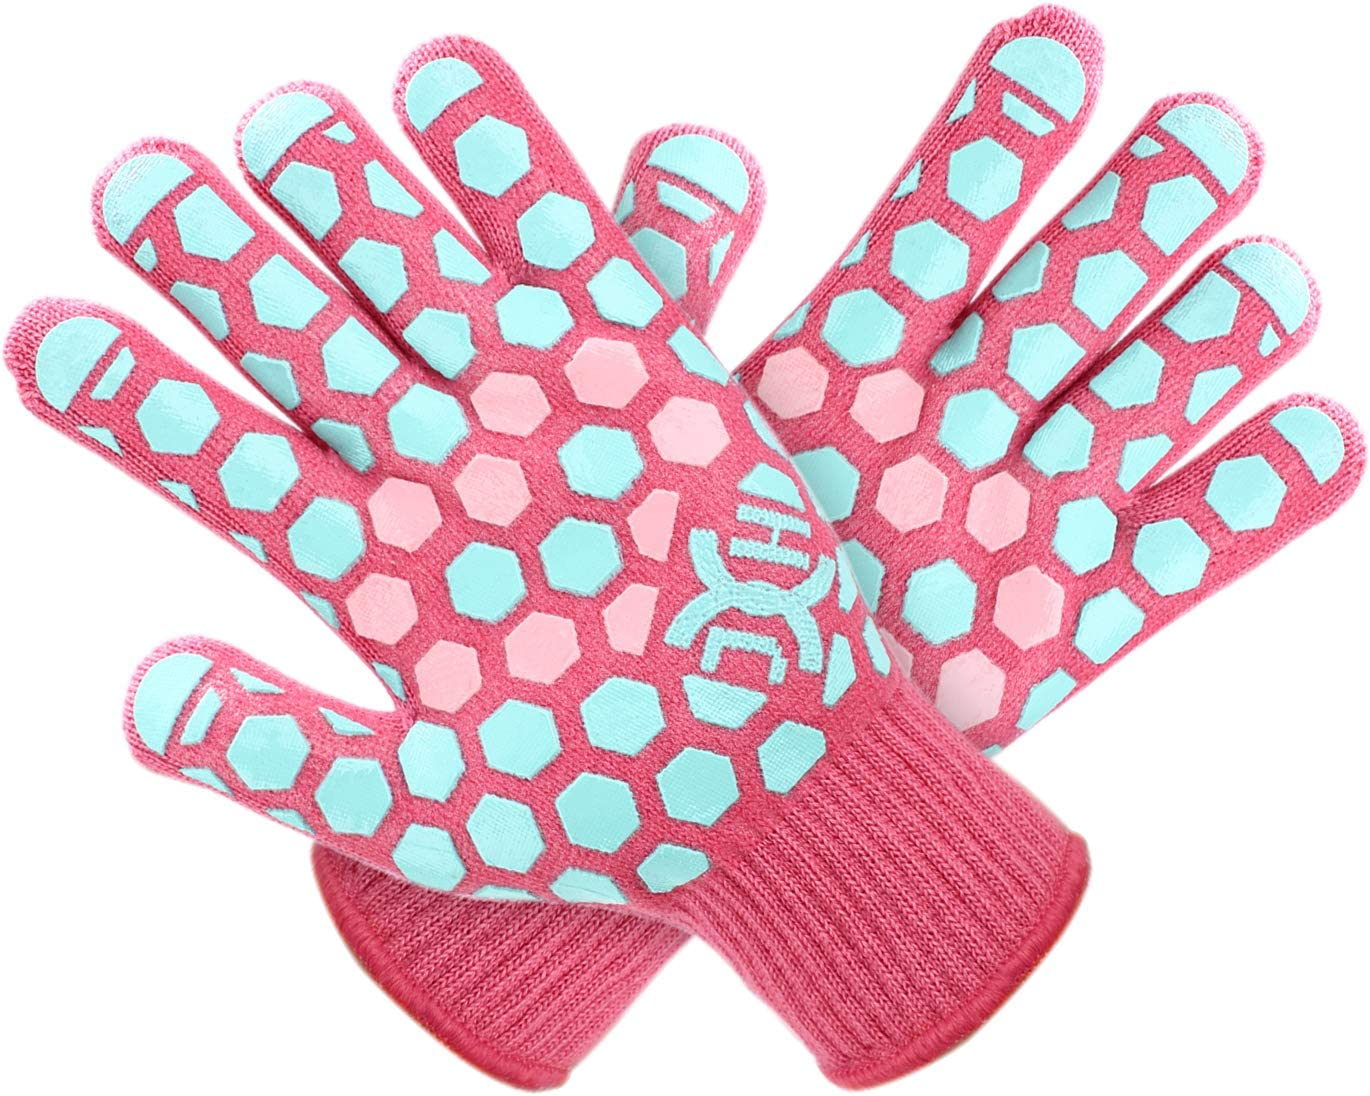 JH Heat Resistant BBQ Glove: EN407 Certified 932 °F, 2 Layers Silicone Coating, Coral Shell with Turquoise/Pink Coating, Oven Mitts For Cooking, Kitchen, Fireplace, Grilling, 1 Pair, Women Fits All